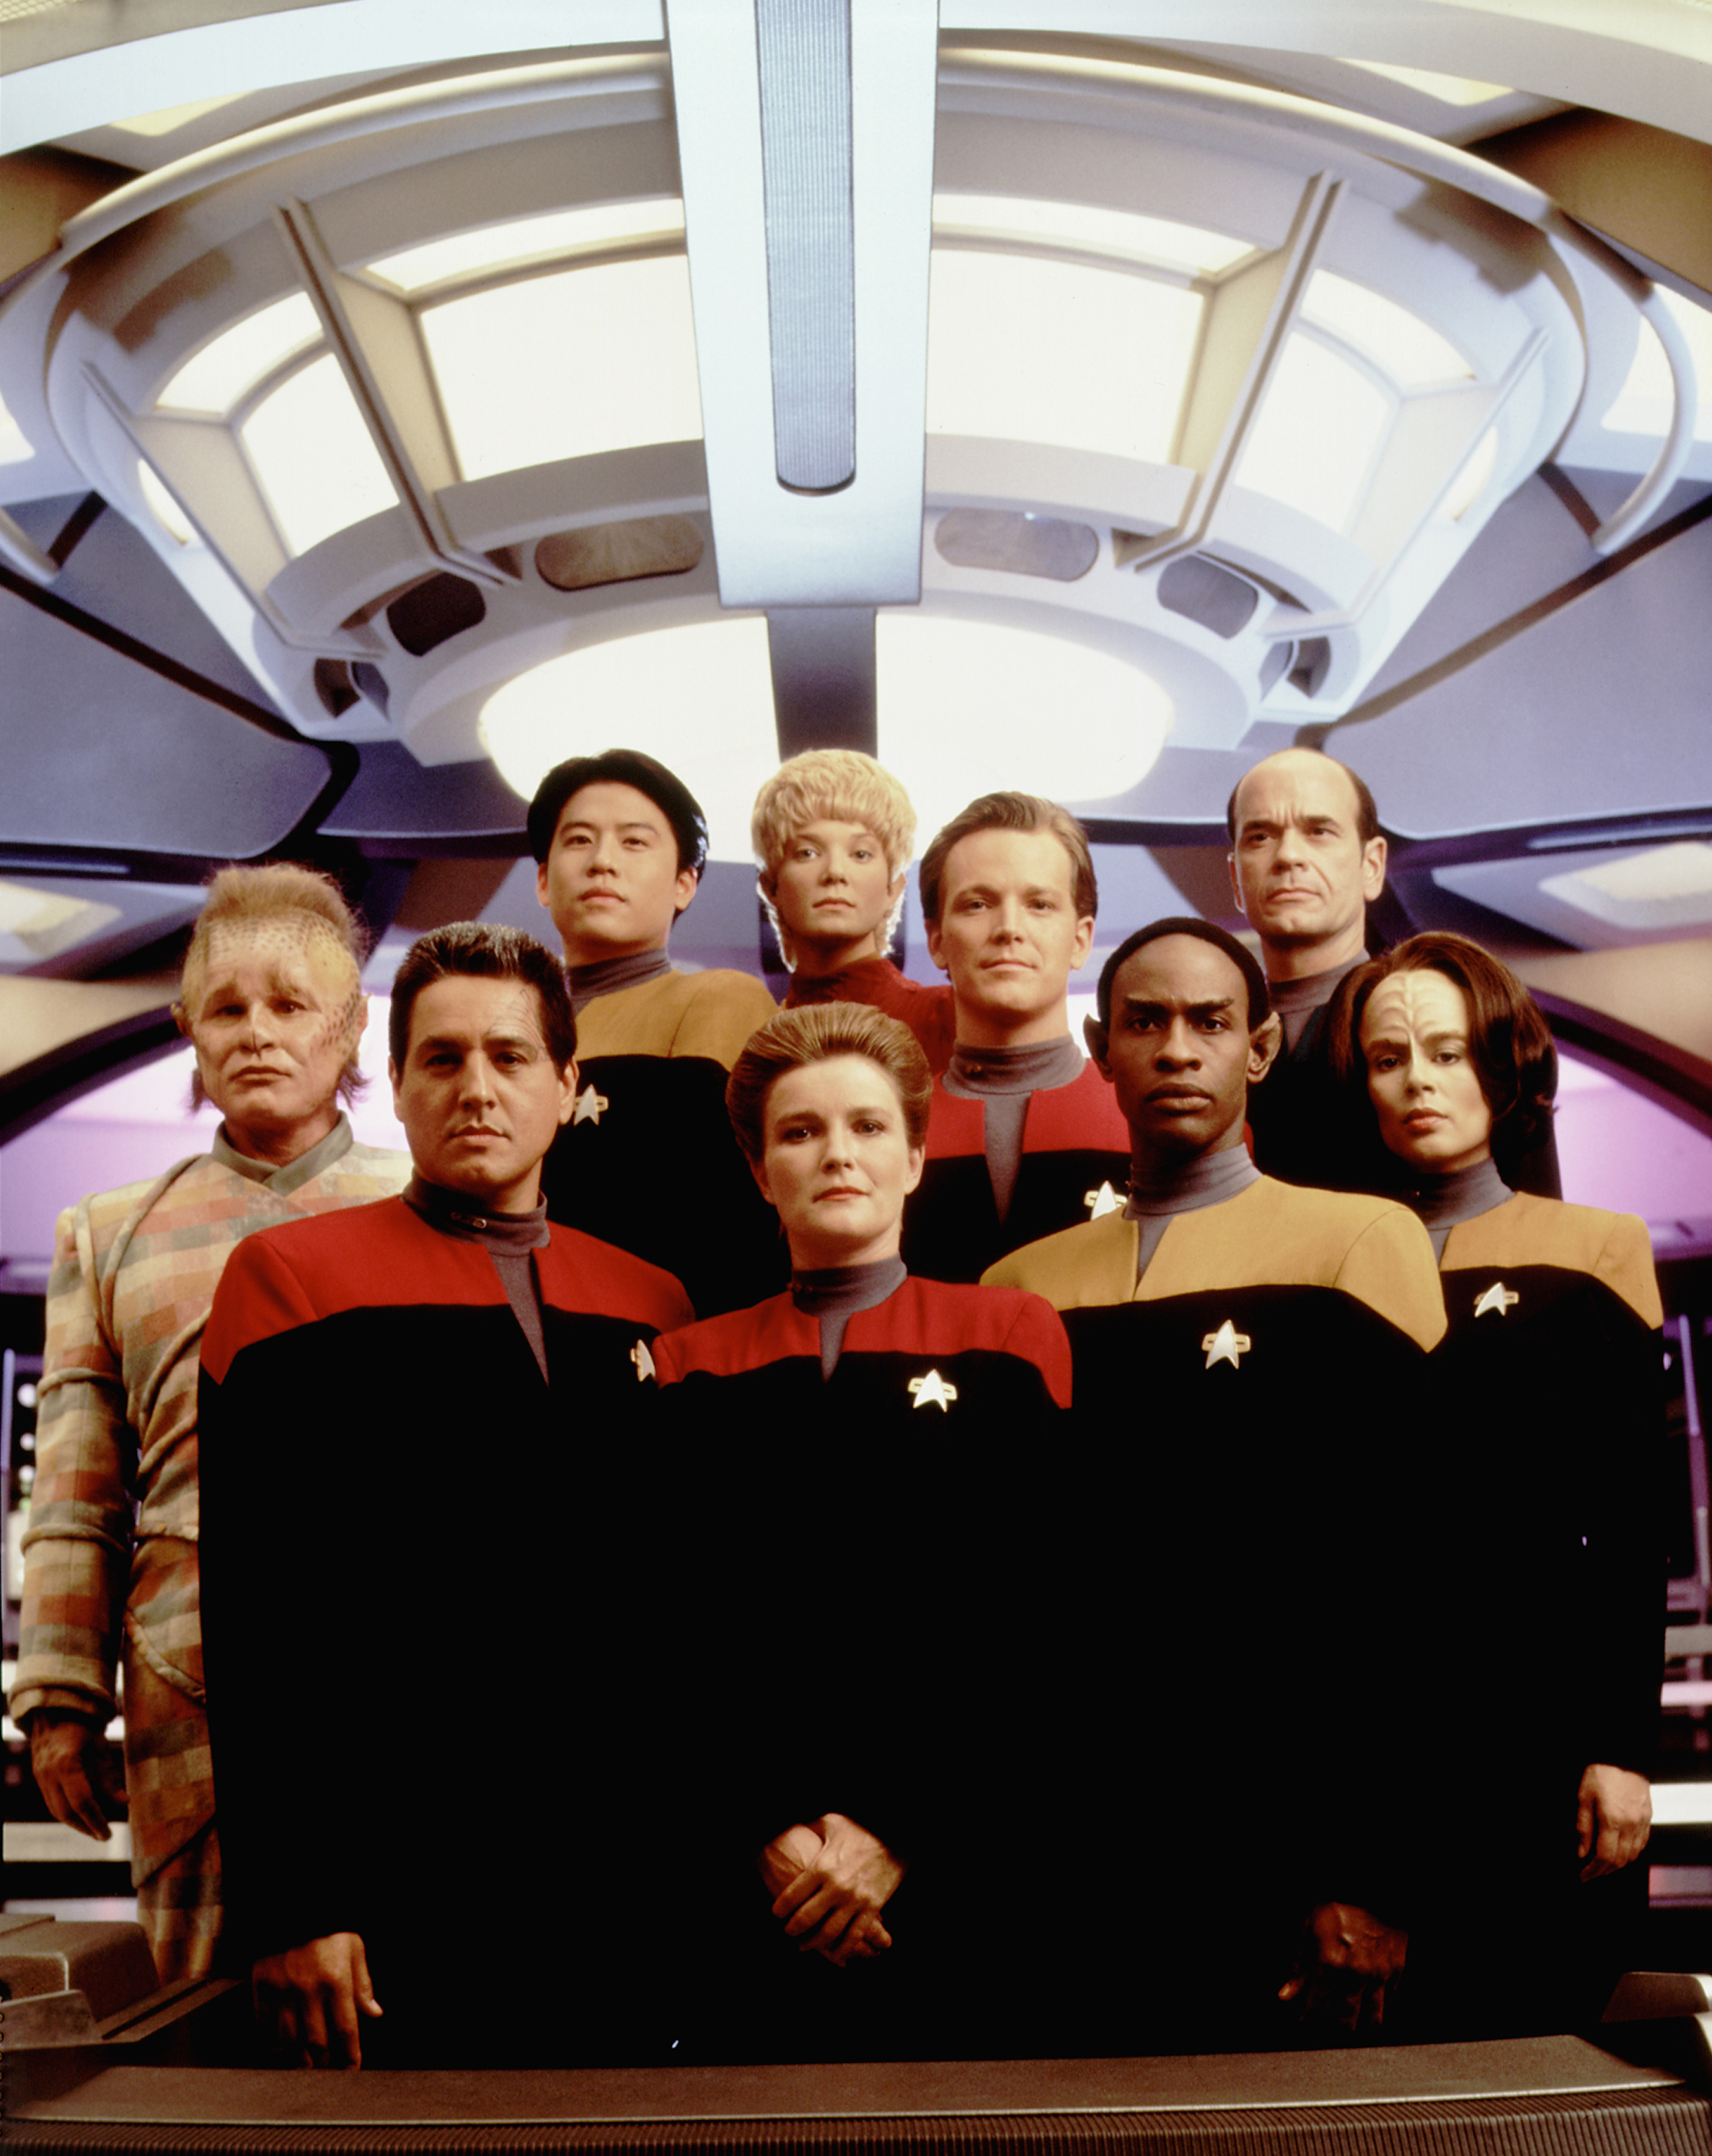 Cast of Star trek Voyager, first season, from left: Neelix (Ethan Phillips), Chakotay (Robert Beltran), Harry S.L. Kim (Garrett Wang), Kathryn Janeway (Kate Mulgrew), Kes (Jennifer Lien), Thomas Eugene Paris (Robert Duncan McNeill), Tuvok (Tim Russ),  The Doctor  (Robert Picardo), B'Elanna Torres (Roxann Dawson), 1995.